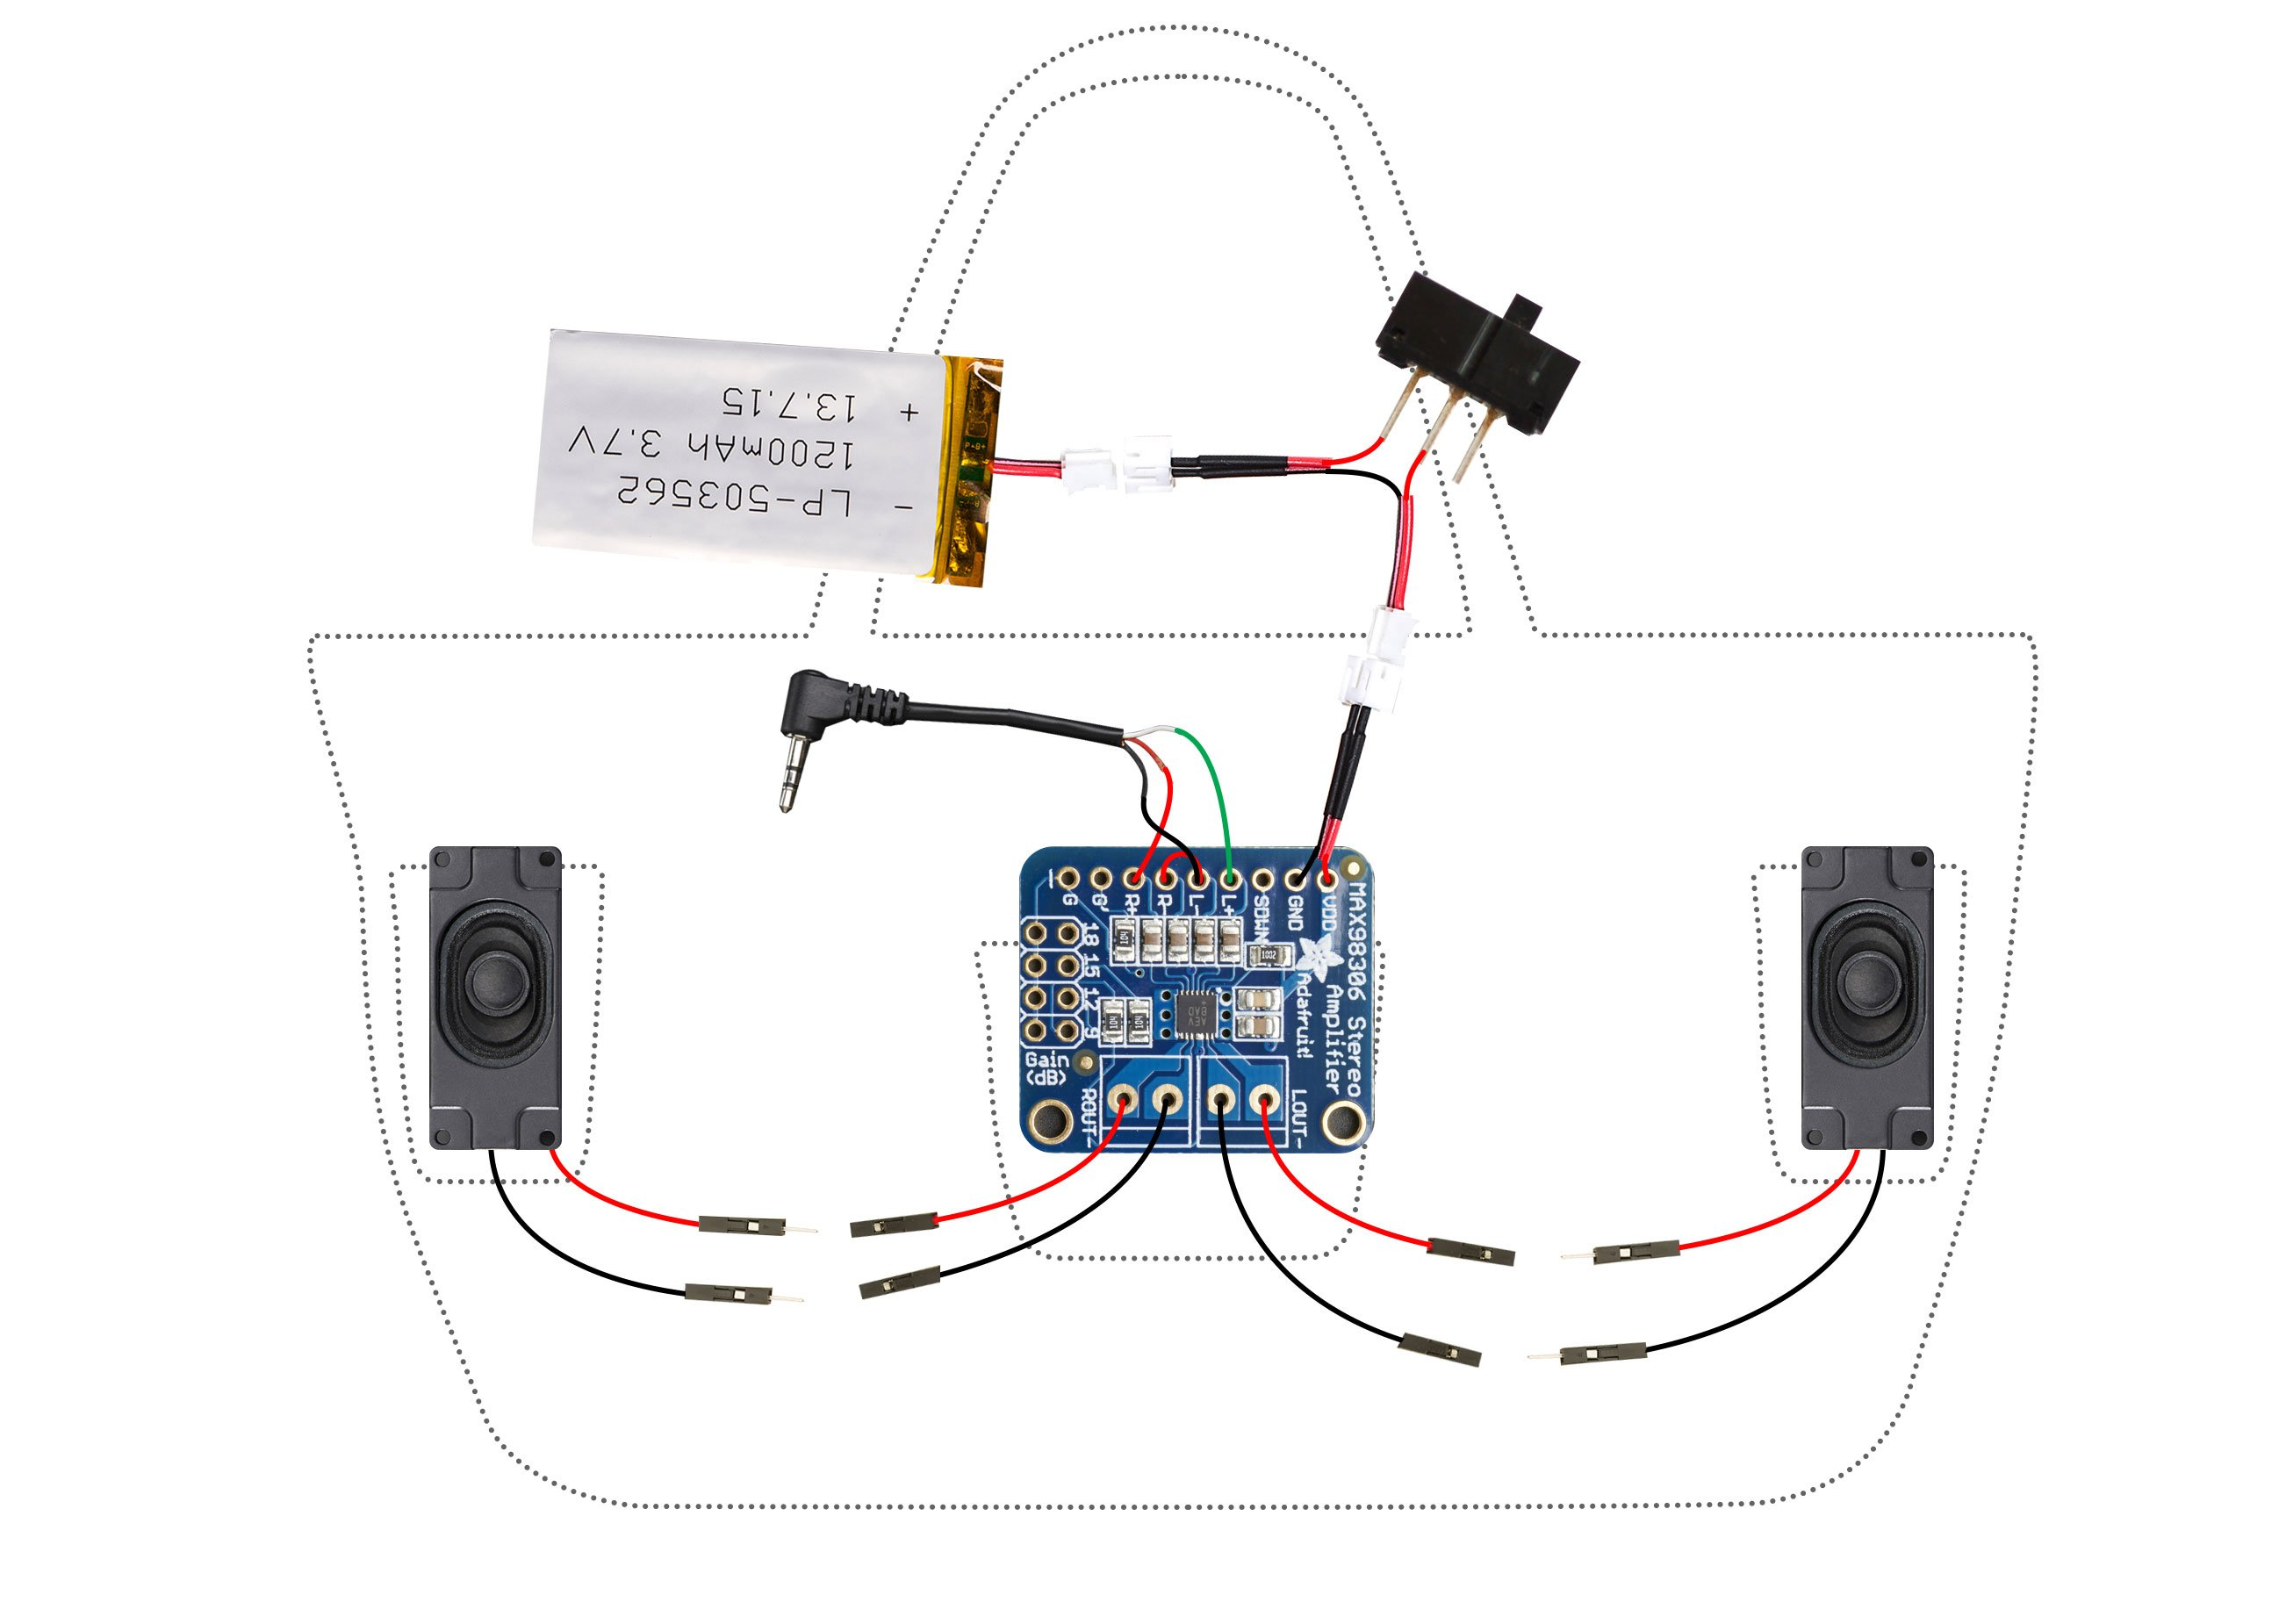 circuit diagram boombox beach bag with audio amp and speakers rh learn adafruit com wiring diagram of a car wiring diagram of gravely 160z